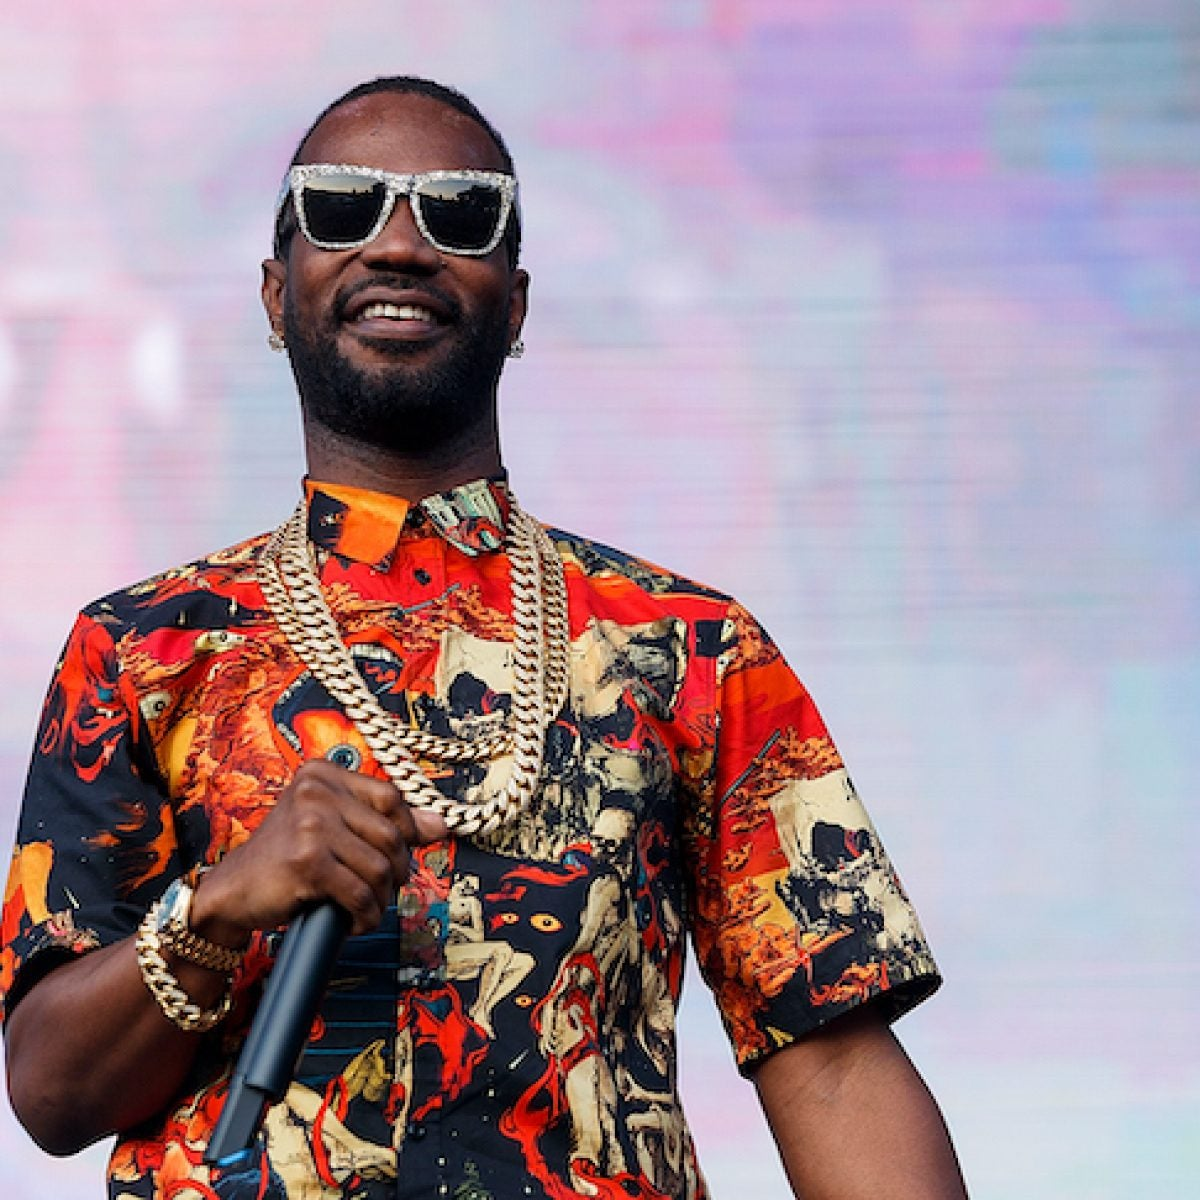 Stay Trippy With This O.G.-Laced Playlist Featuring Juicy J